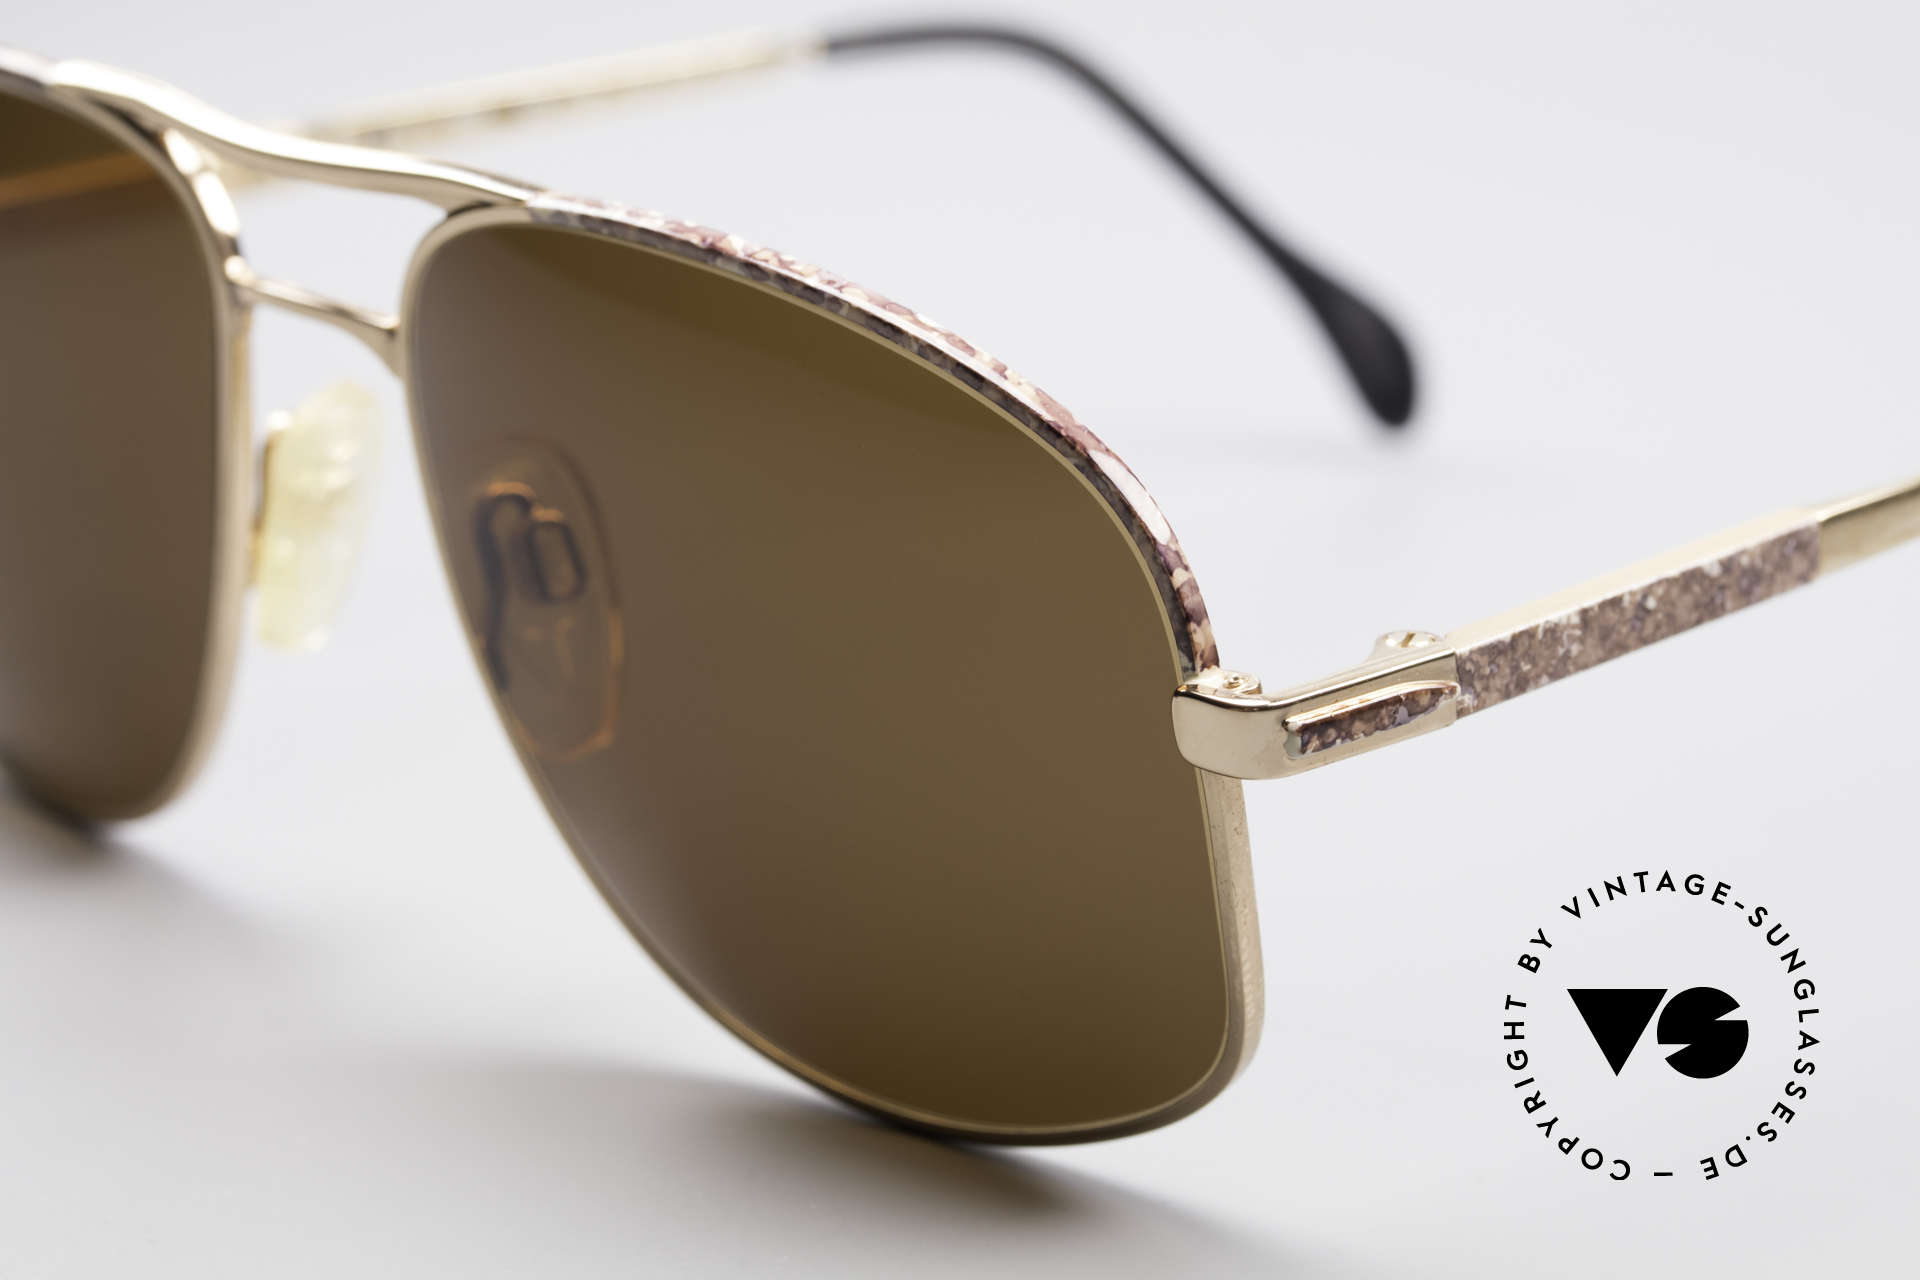 Zollitsch Cadre 8 18k Gold Plated Sunglasses, interesting alternative to the ordinary 'aviator style', Made for Men